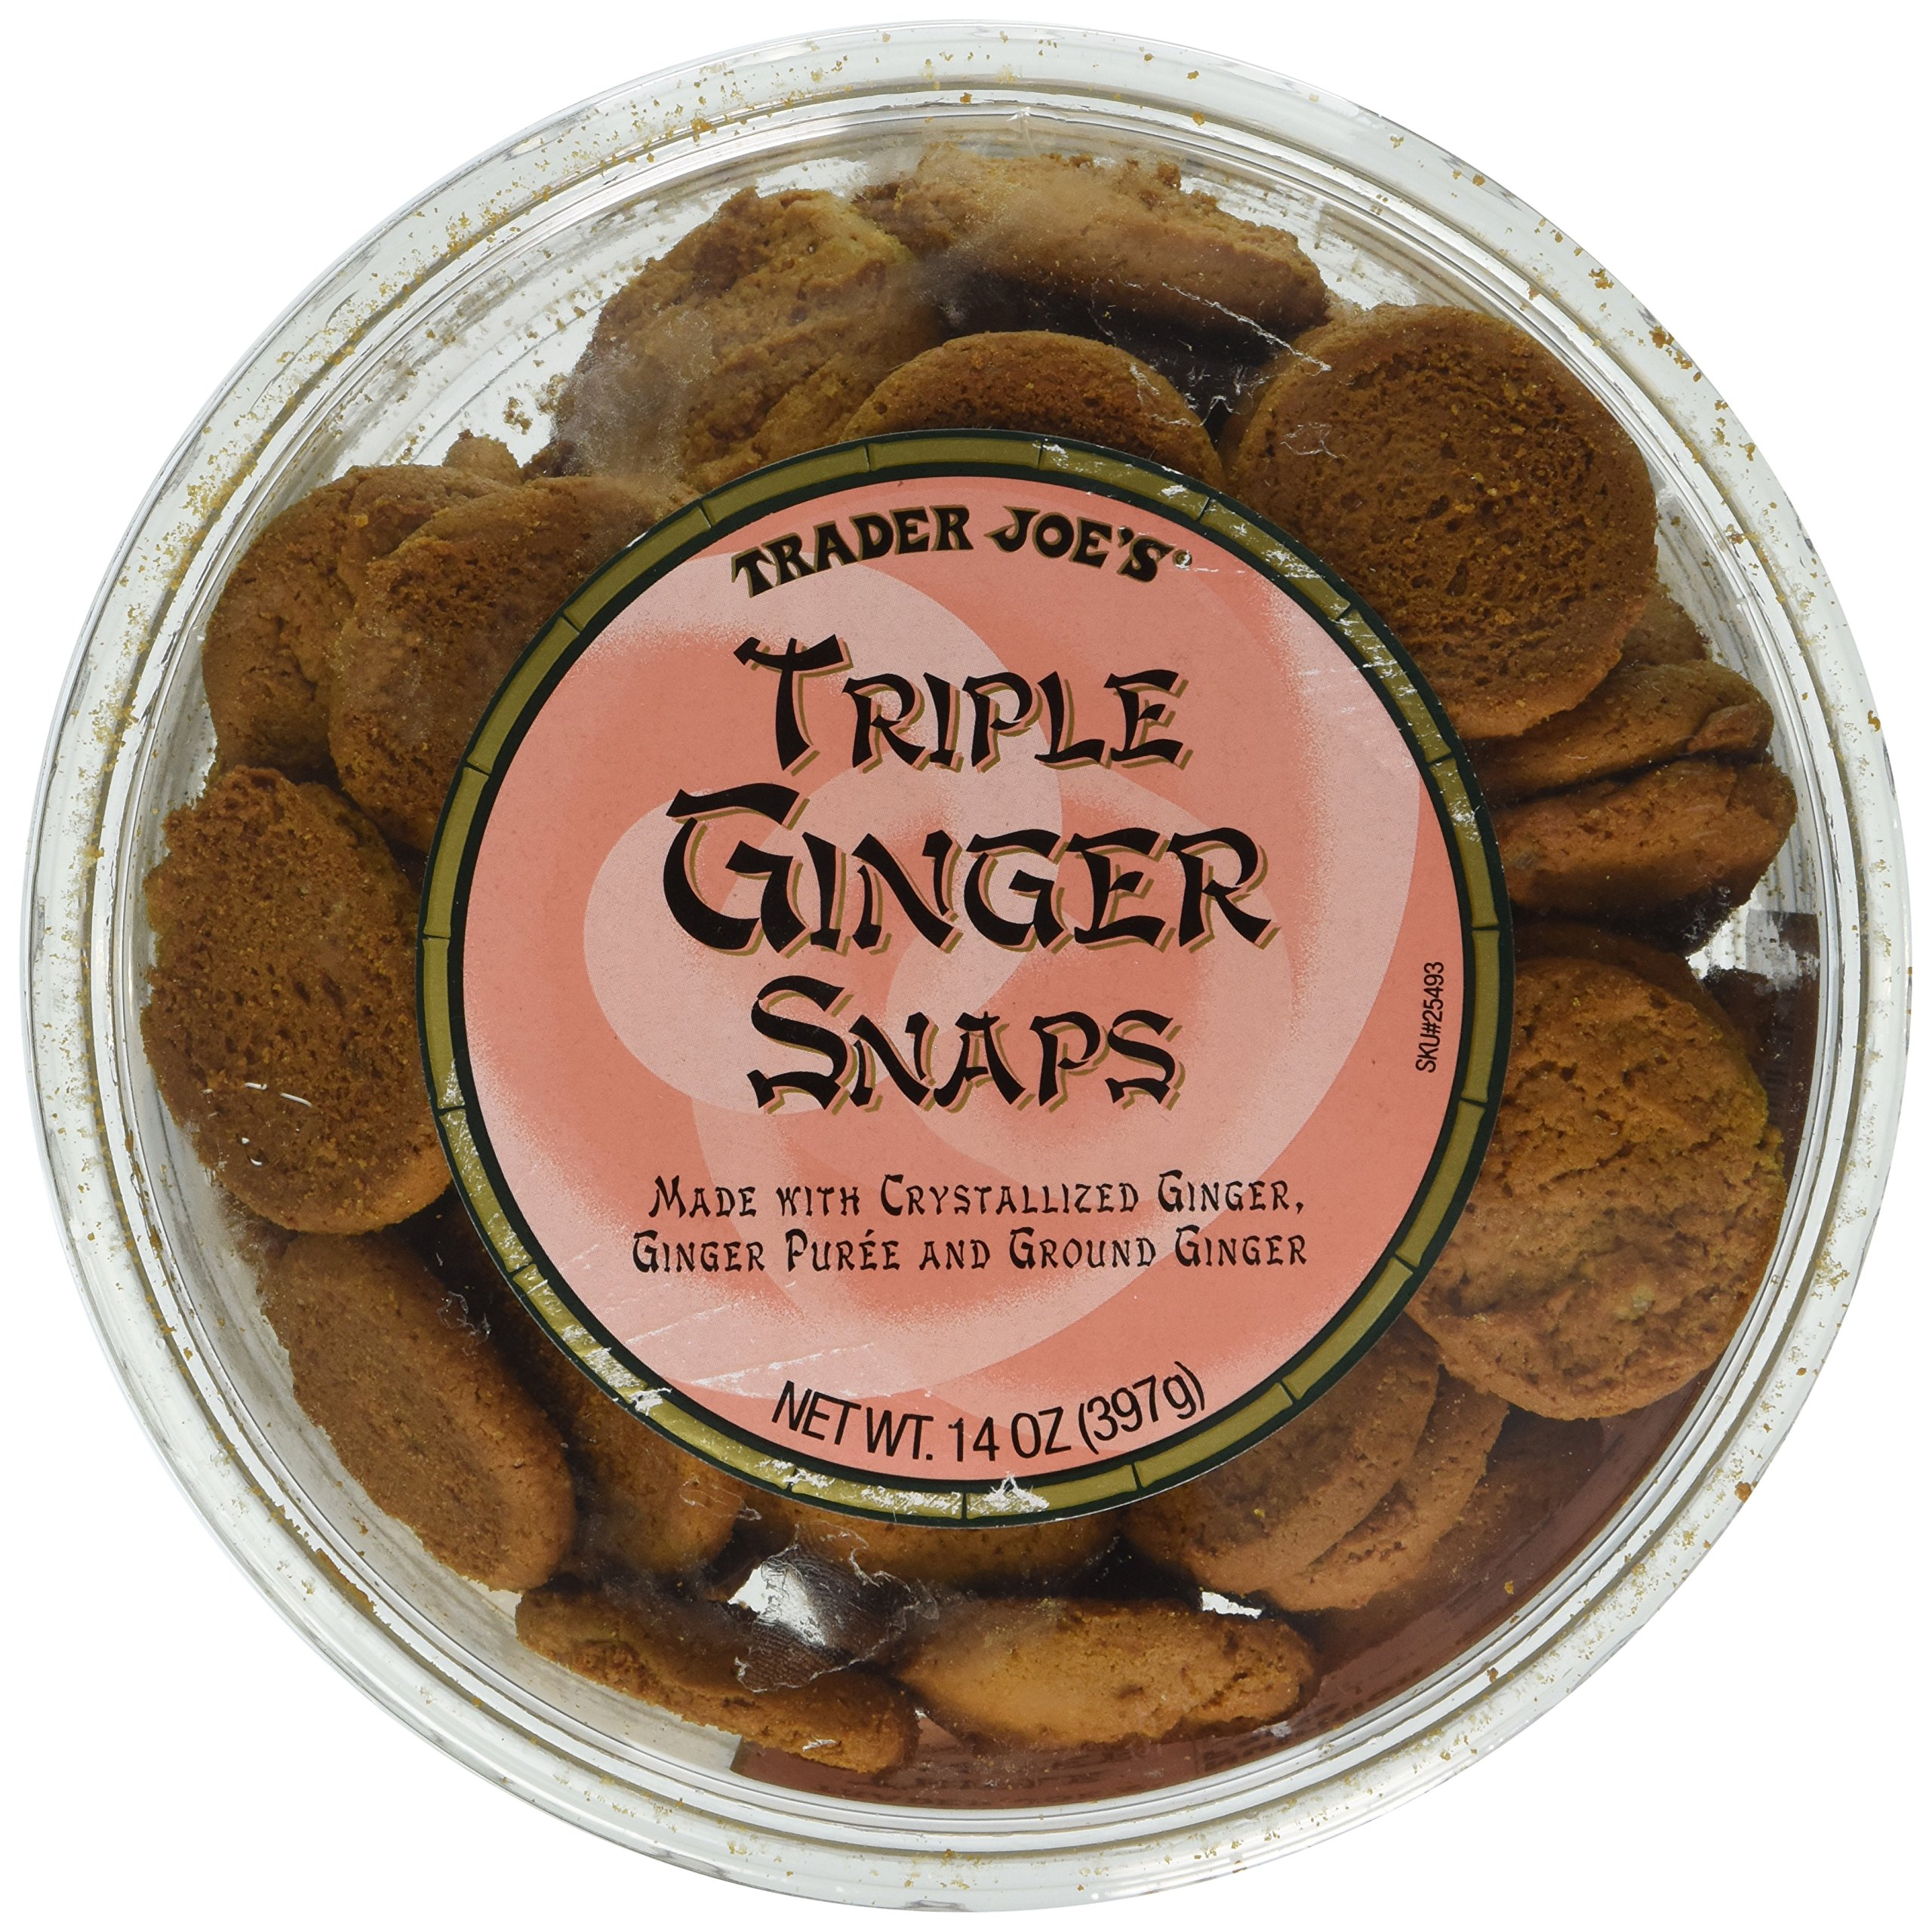 Trader Joe's Triple Ginger Snap cookies 14oz (2pk) by Trader Joe's